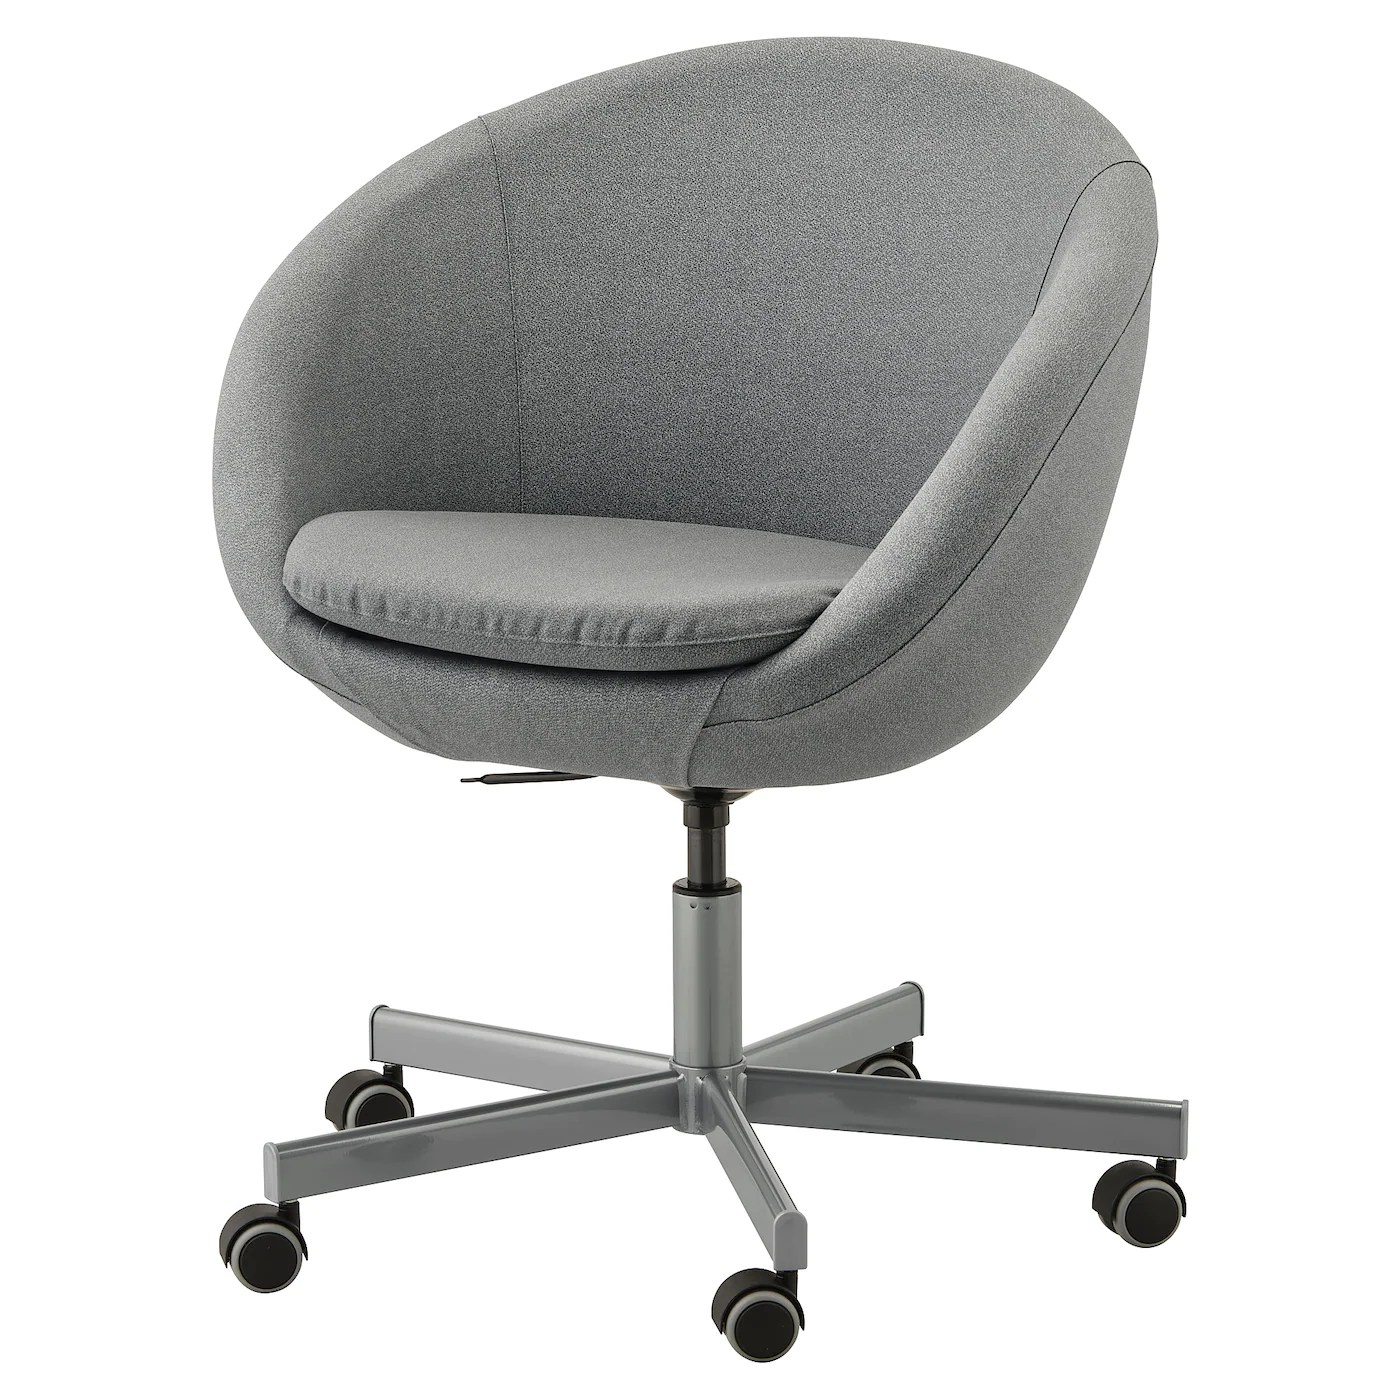 Grey Desk Chair Skruvsta Swivel Chair Flackarp Medium Grey